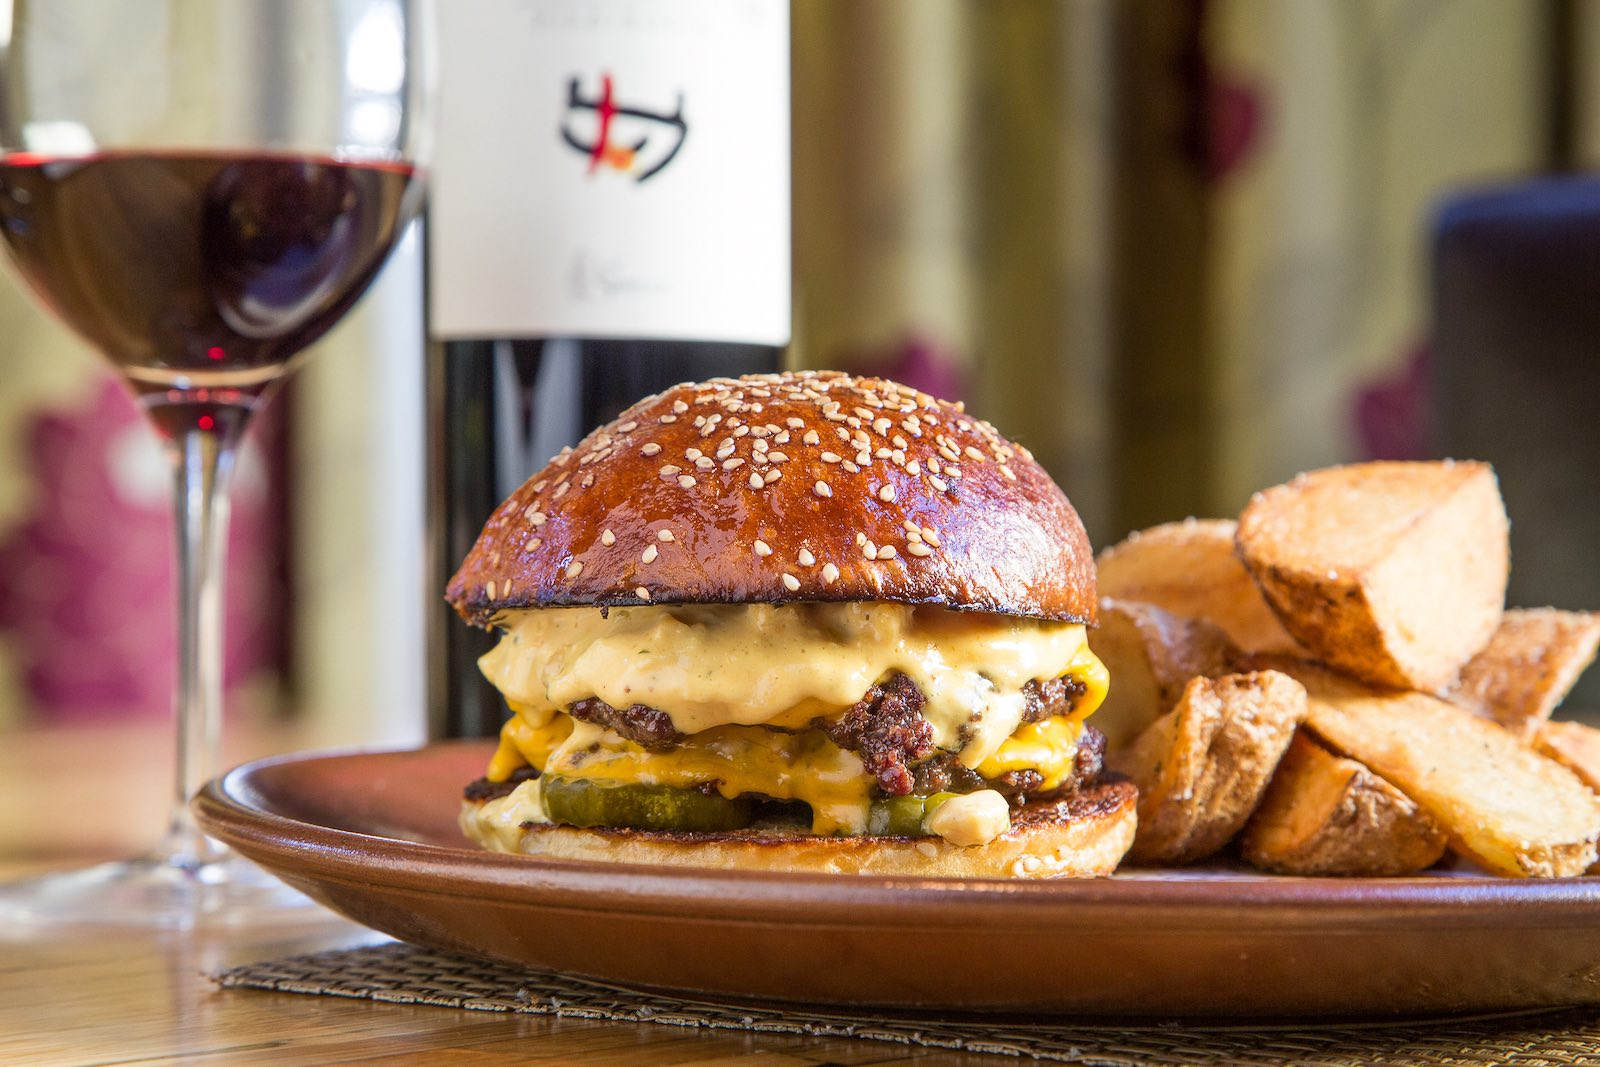 The Husk cheeseburger with potato wedges clocks in at $17 on the 2021 Burger Index